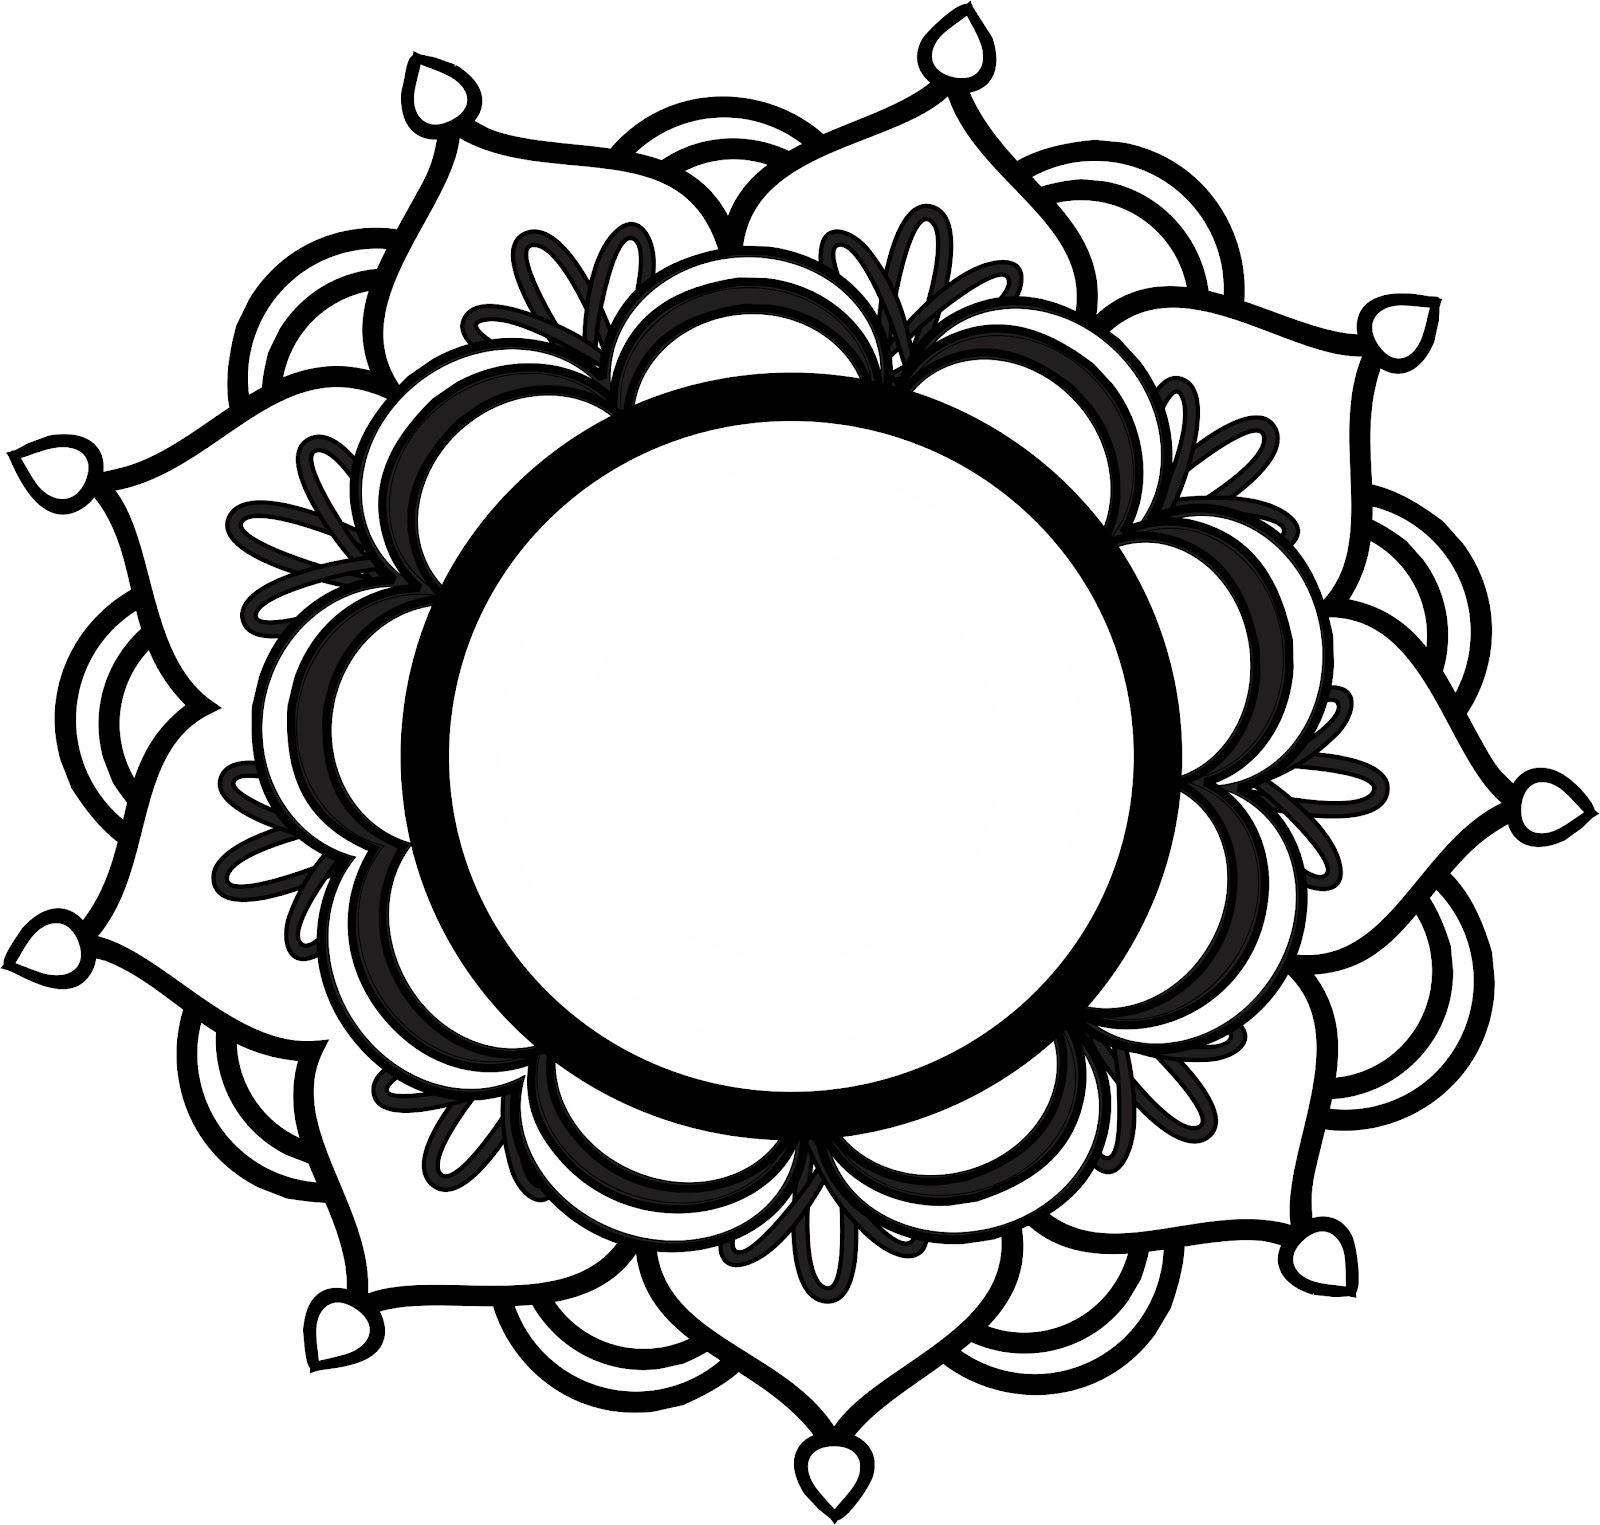 Lotus flower line drawing free download best lotus flower line art and stuff by erica marie lotus mandala izmirmasajfo